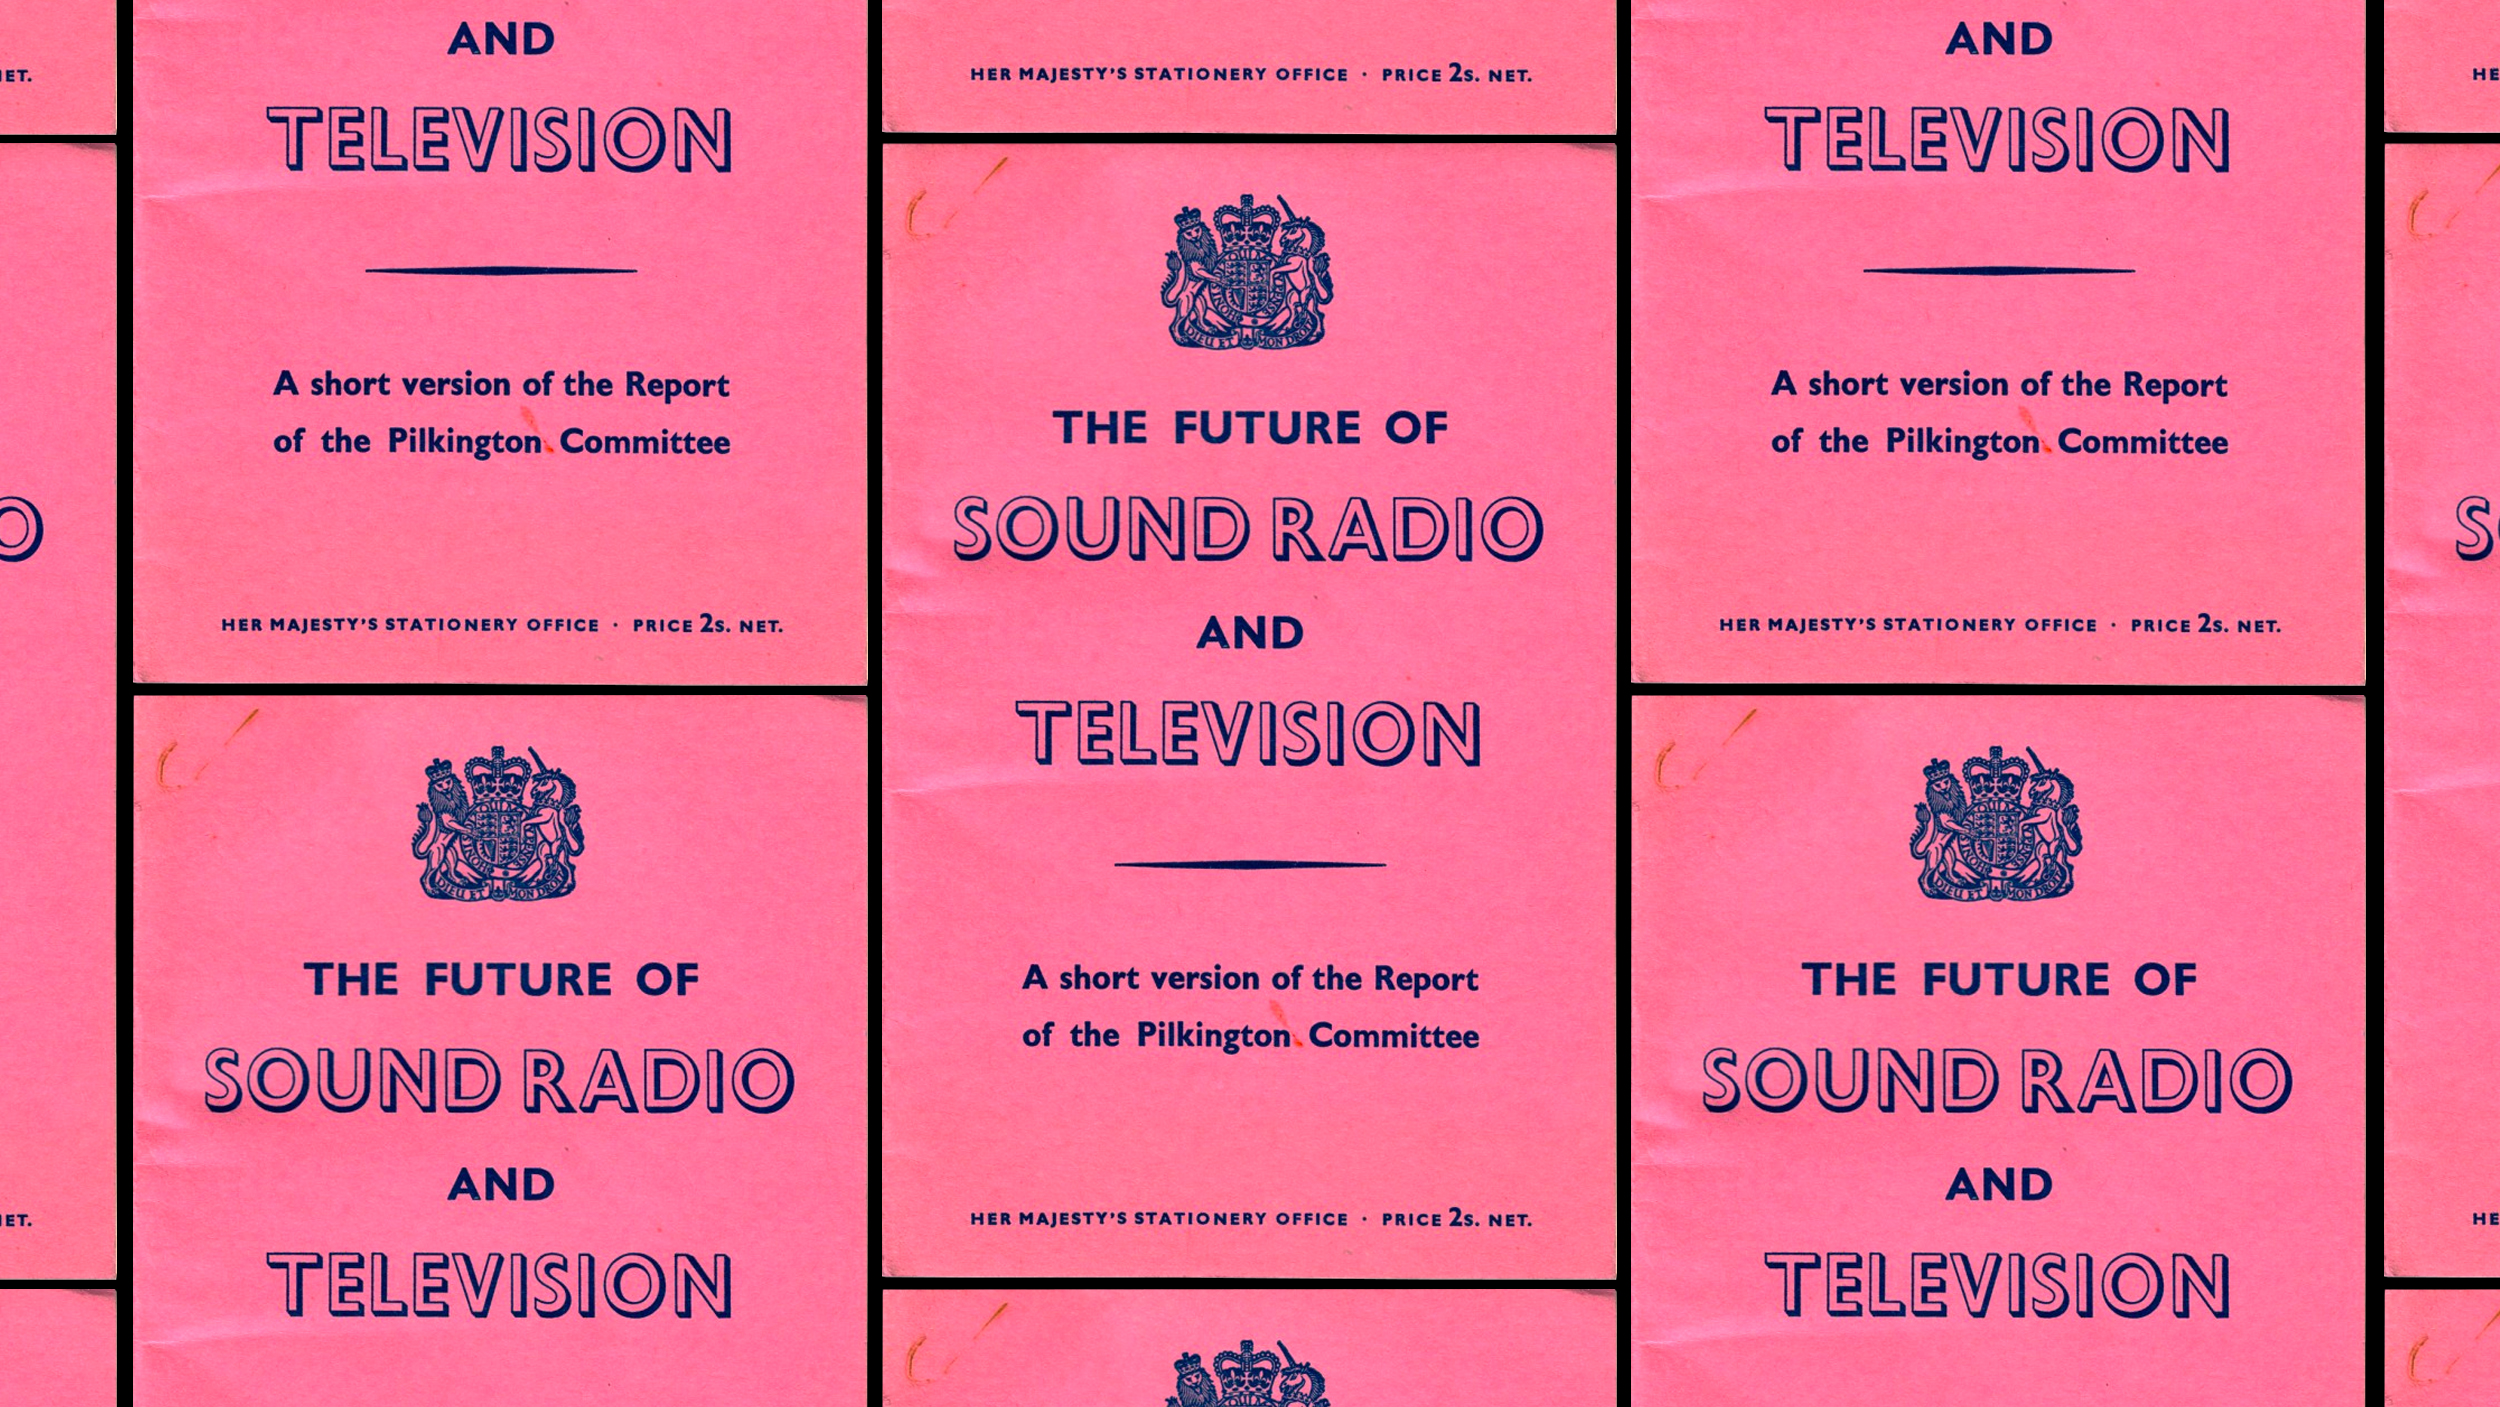 Cover of The Pilkington Report from Her Majesty's Stationery Office circa 1962